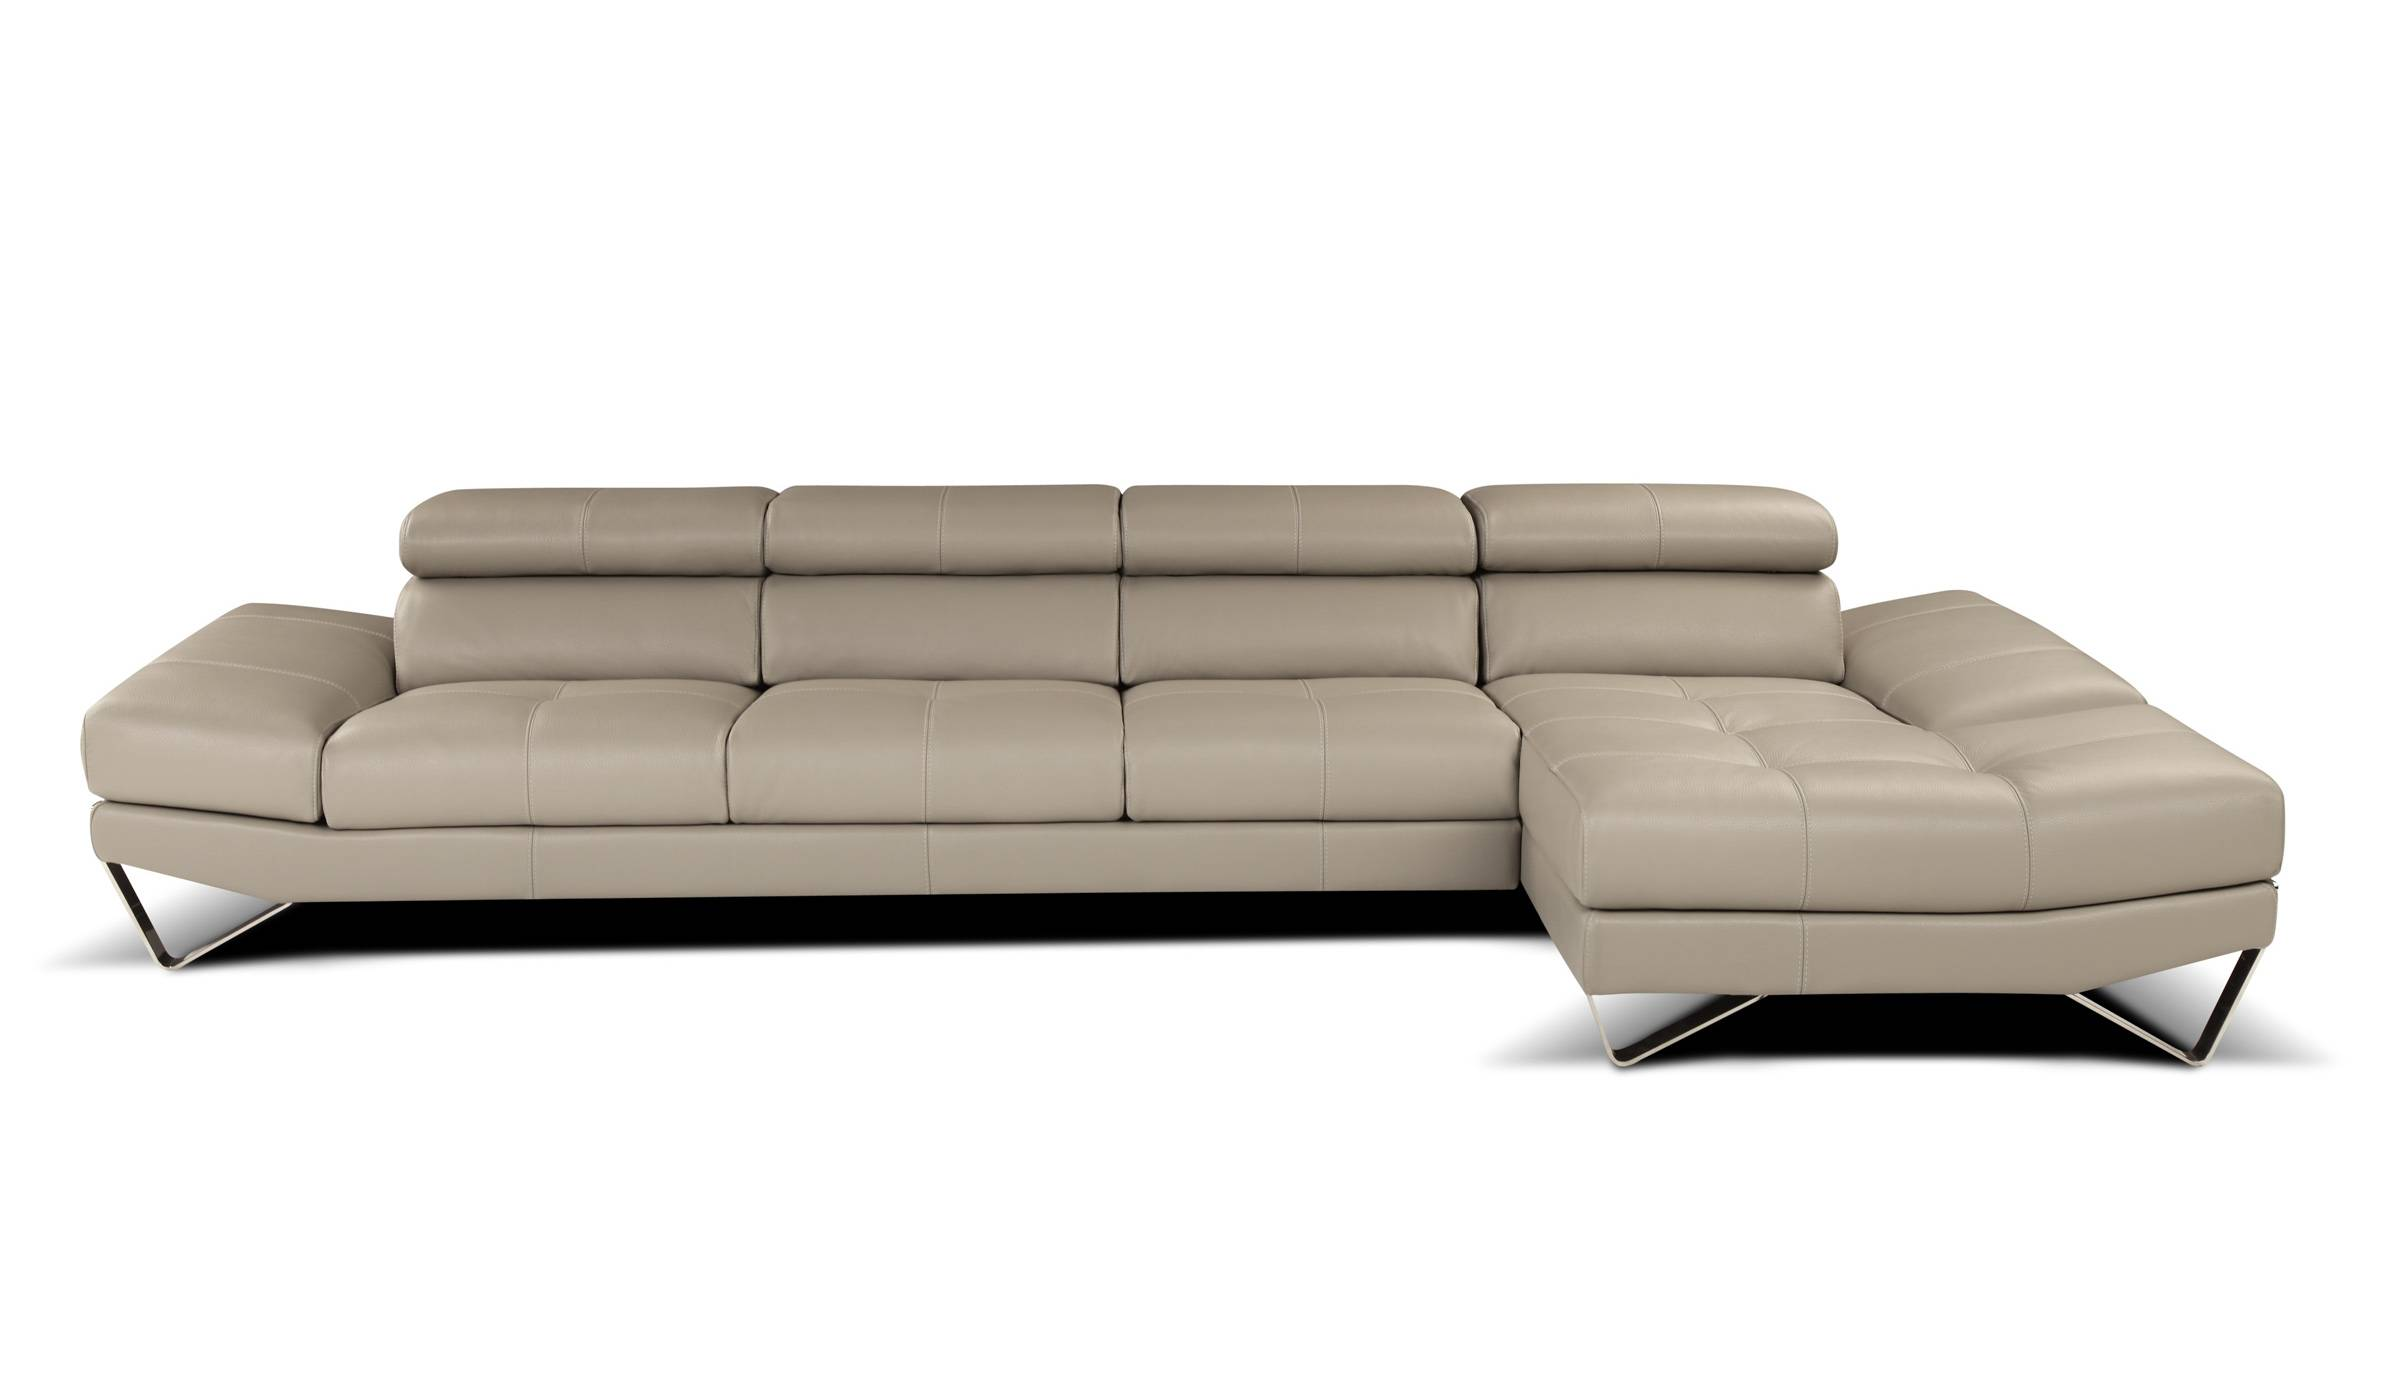 Sophisticated All Italian Leather Sectional Sofa